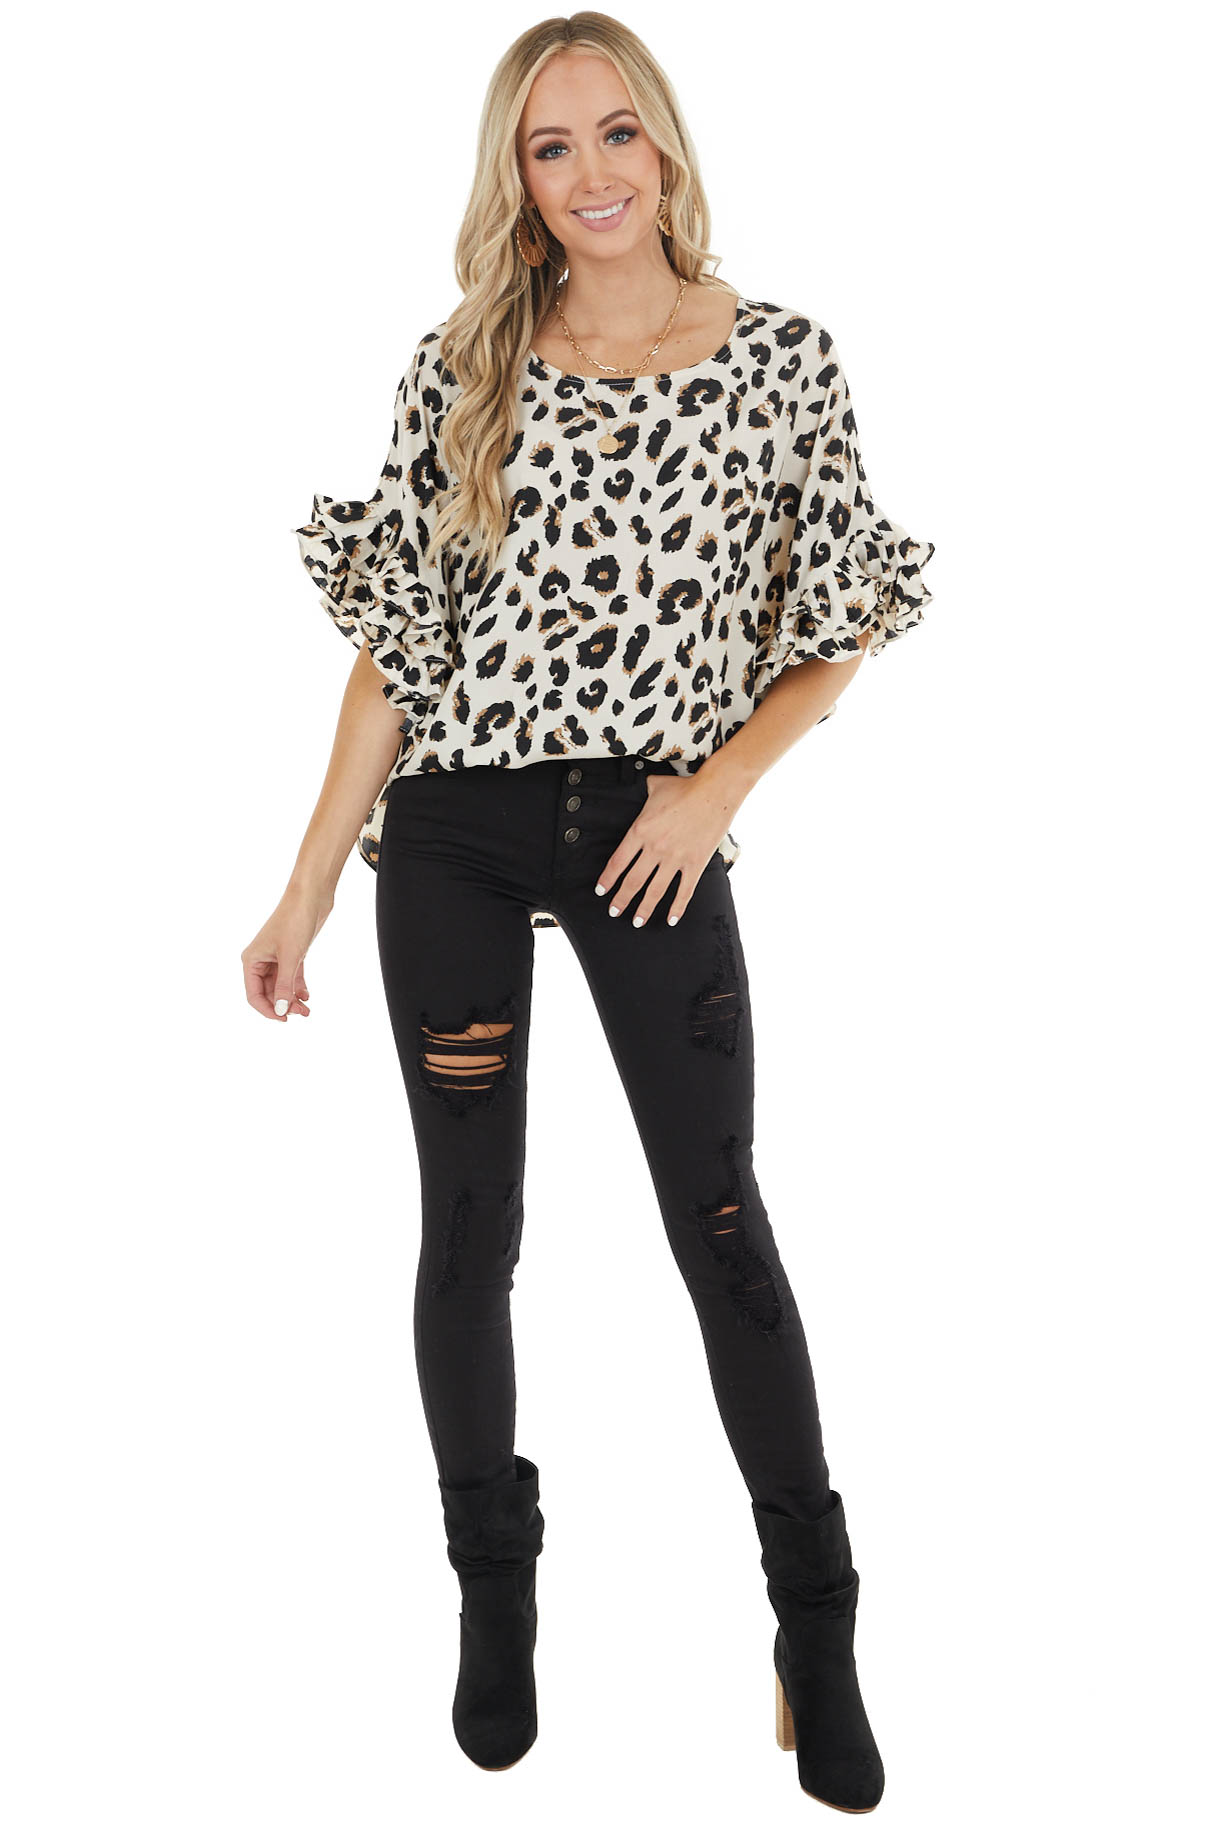 Oatmeal Leopard Print Blouse with 3/4 Ruffle Sleeves